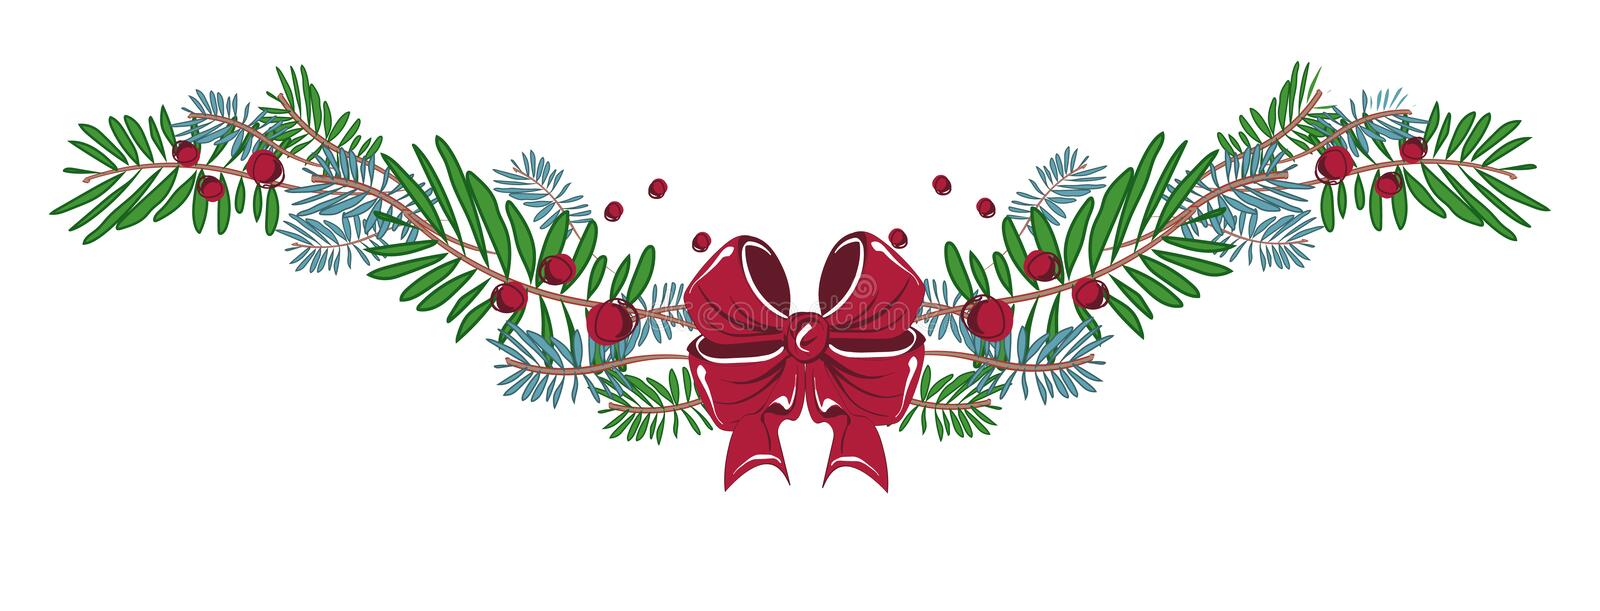 Merry Christmas and Happy new Year decorations with ribbon, bow, christmas tree branches. vector illustration